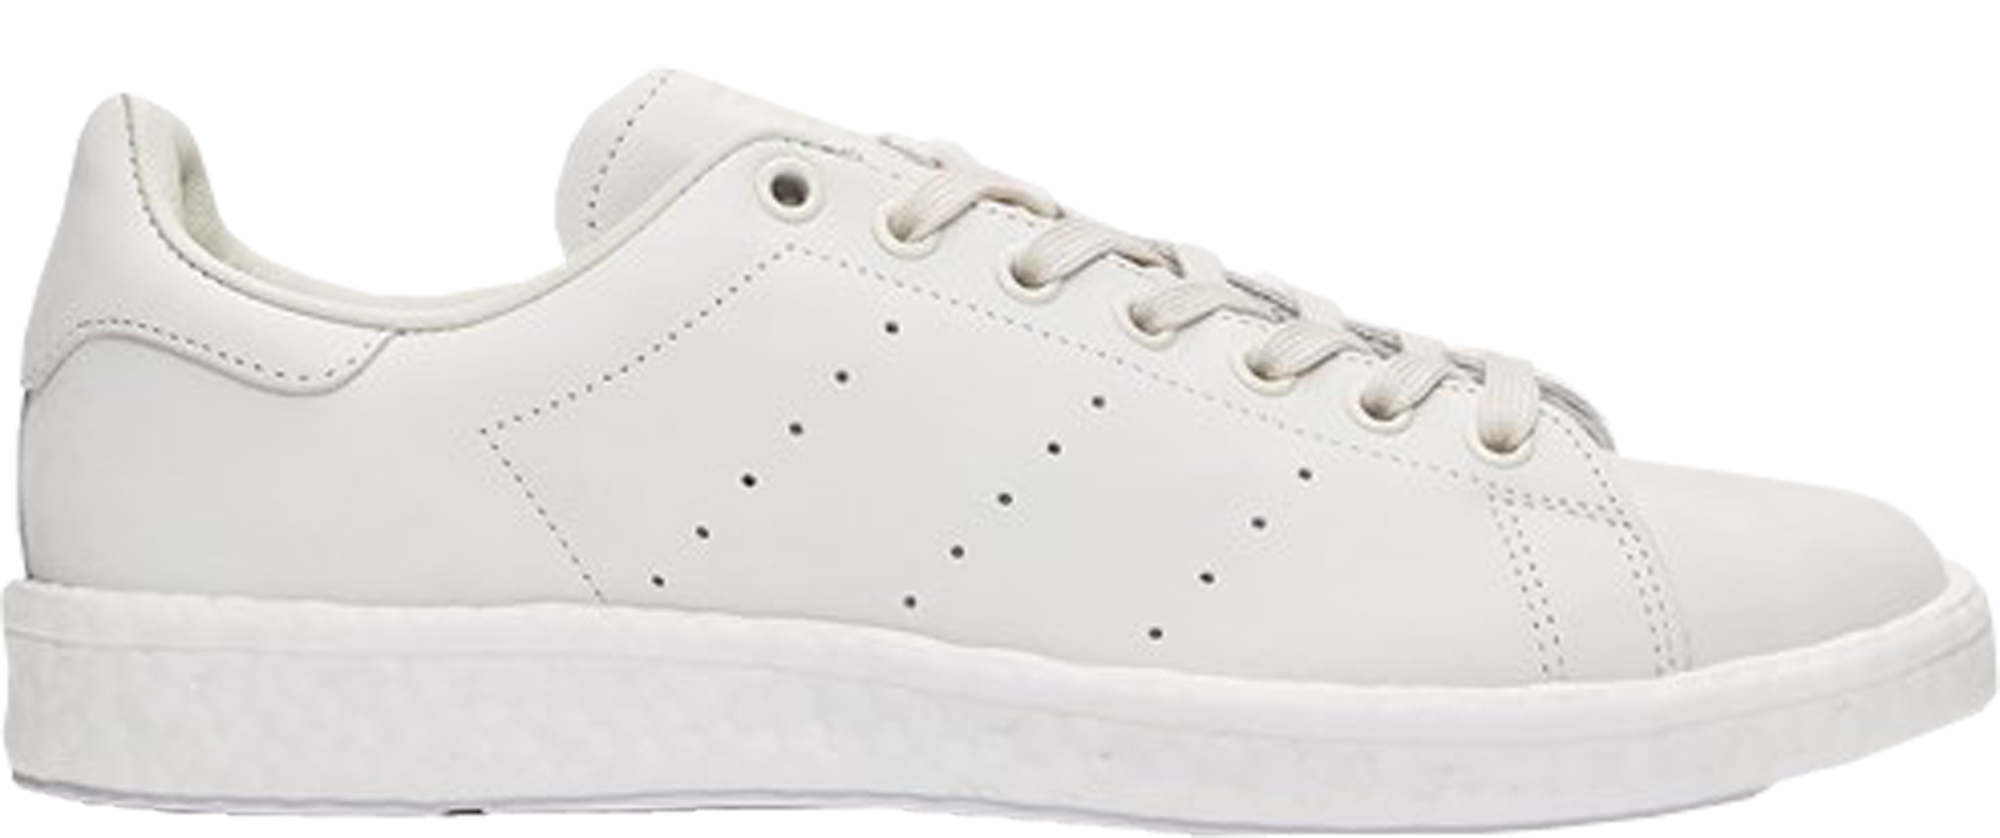 4f01482a613 Sneakersnstuff x adidas Stan Smith Boost Shades Of White V2 ...